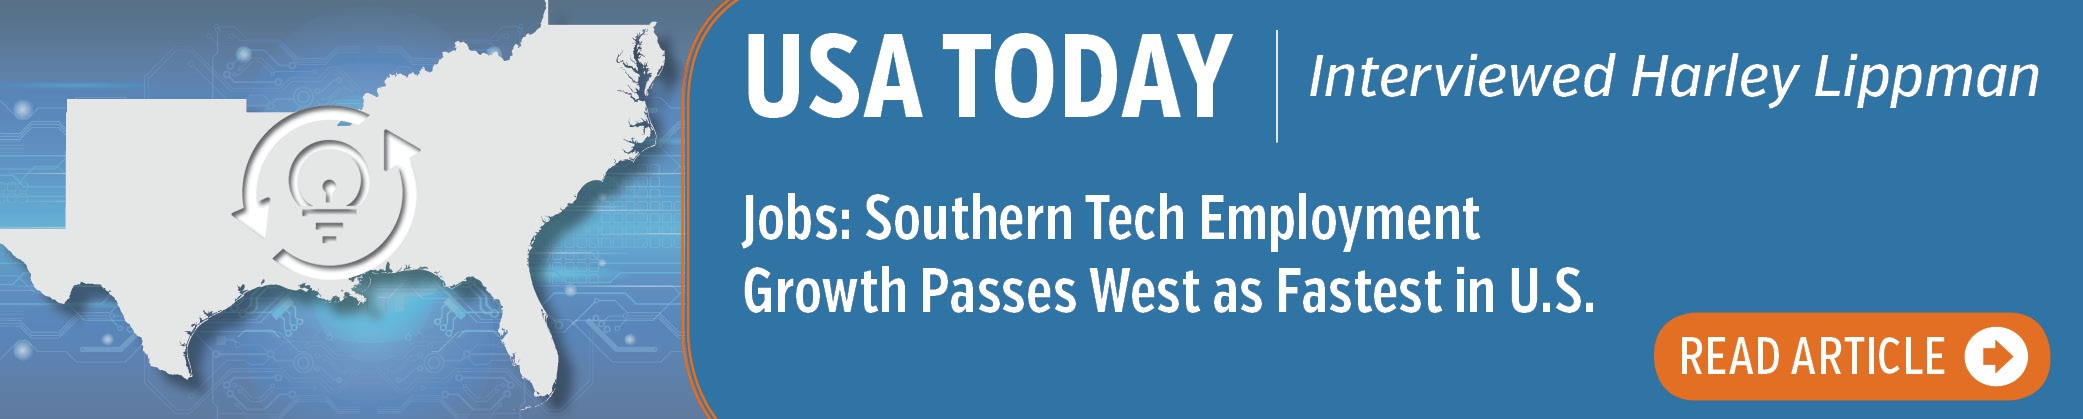 USA TODAY - obs: Southern Tech Employment Growth Passes West as Fastest in U.S.